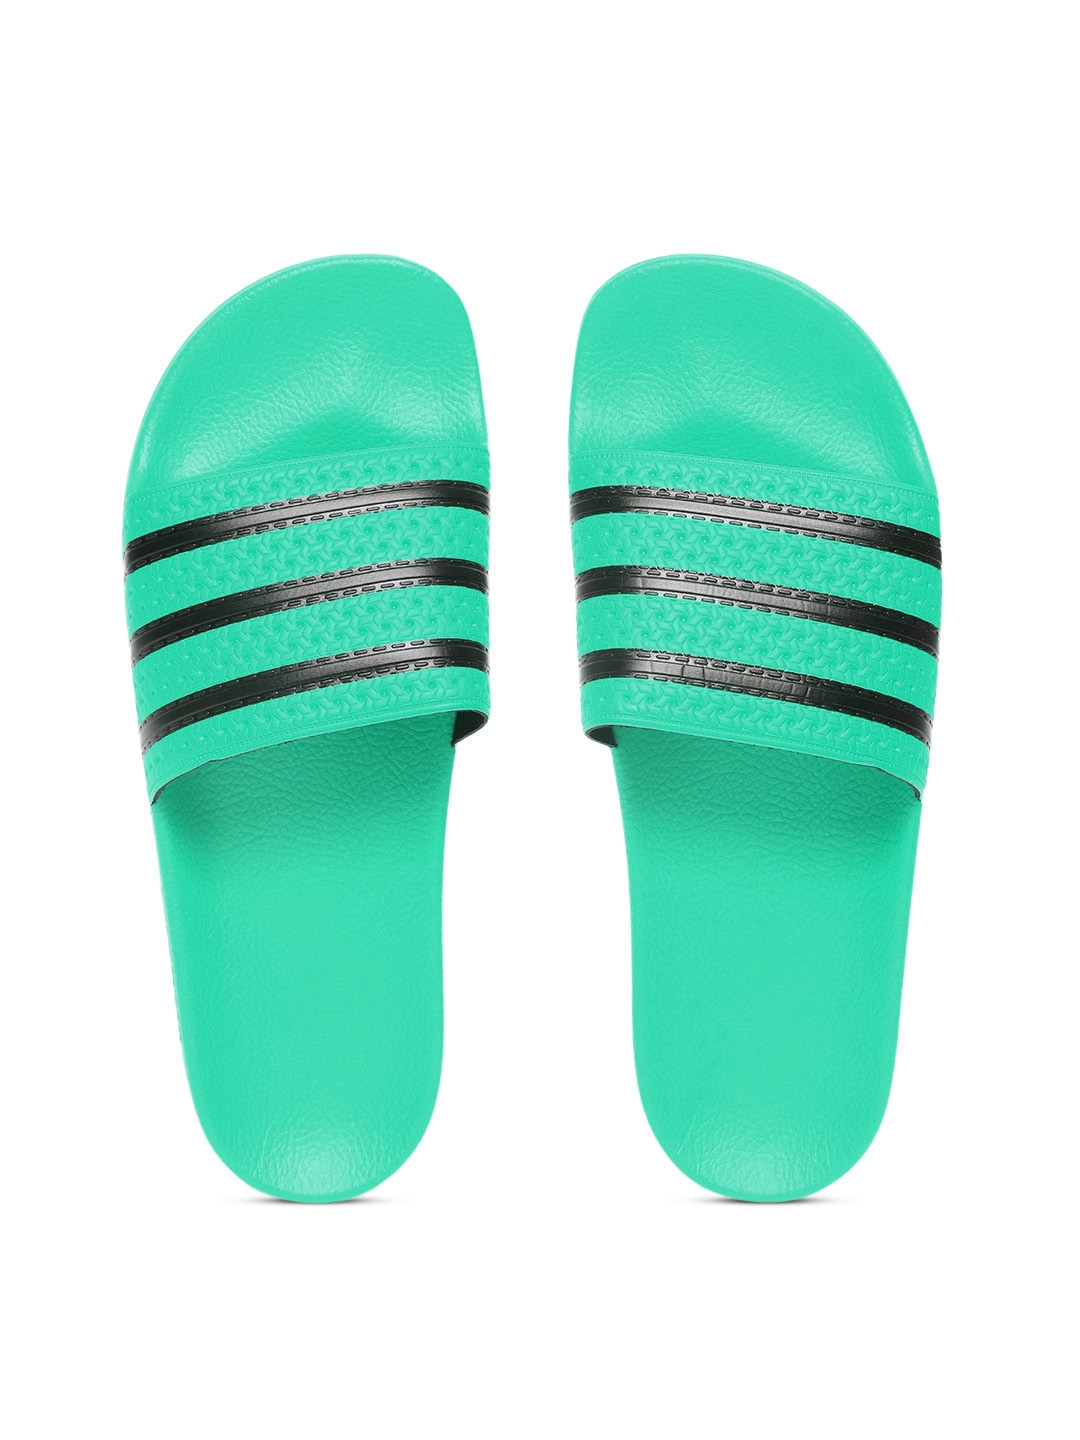 acf3a28cc8741 Buy ADIDAS Originals Men Green   Black ADILETTE Striped Sliders ...